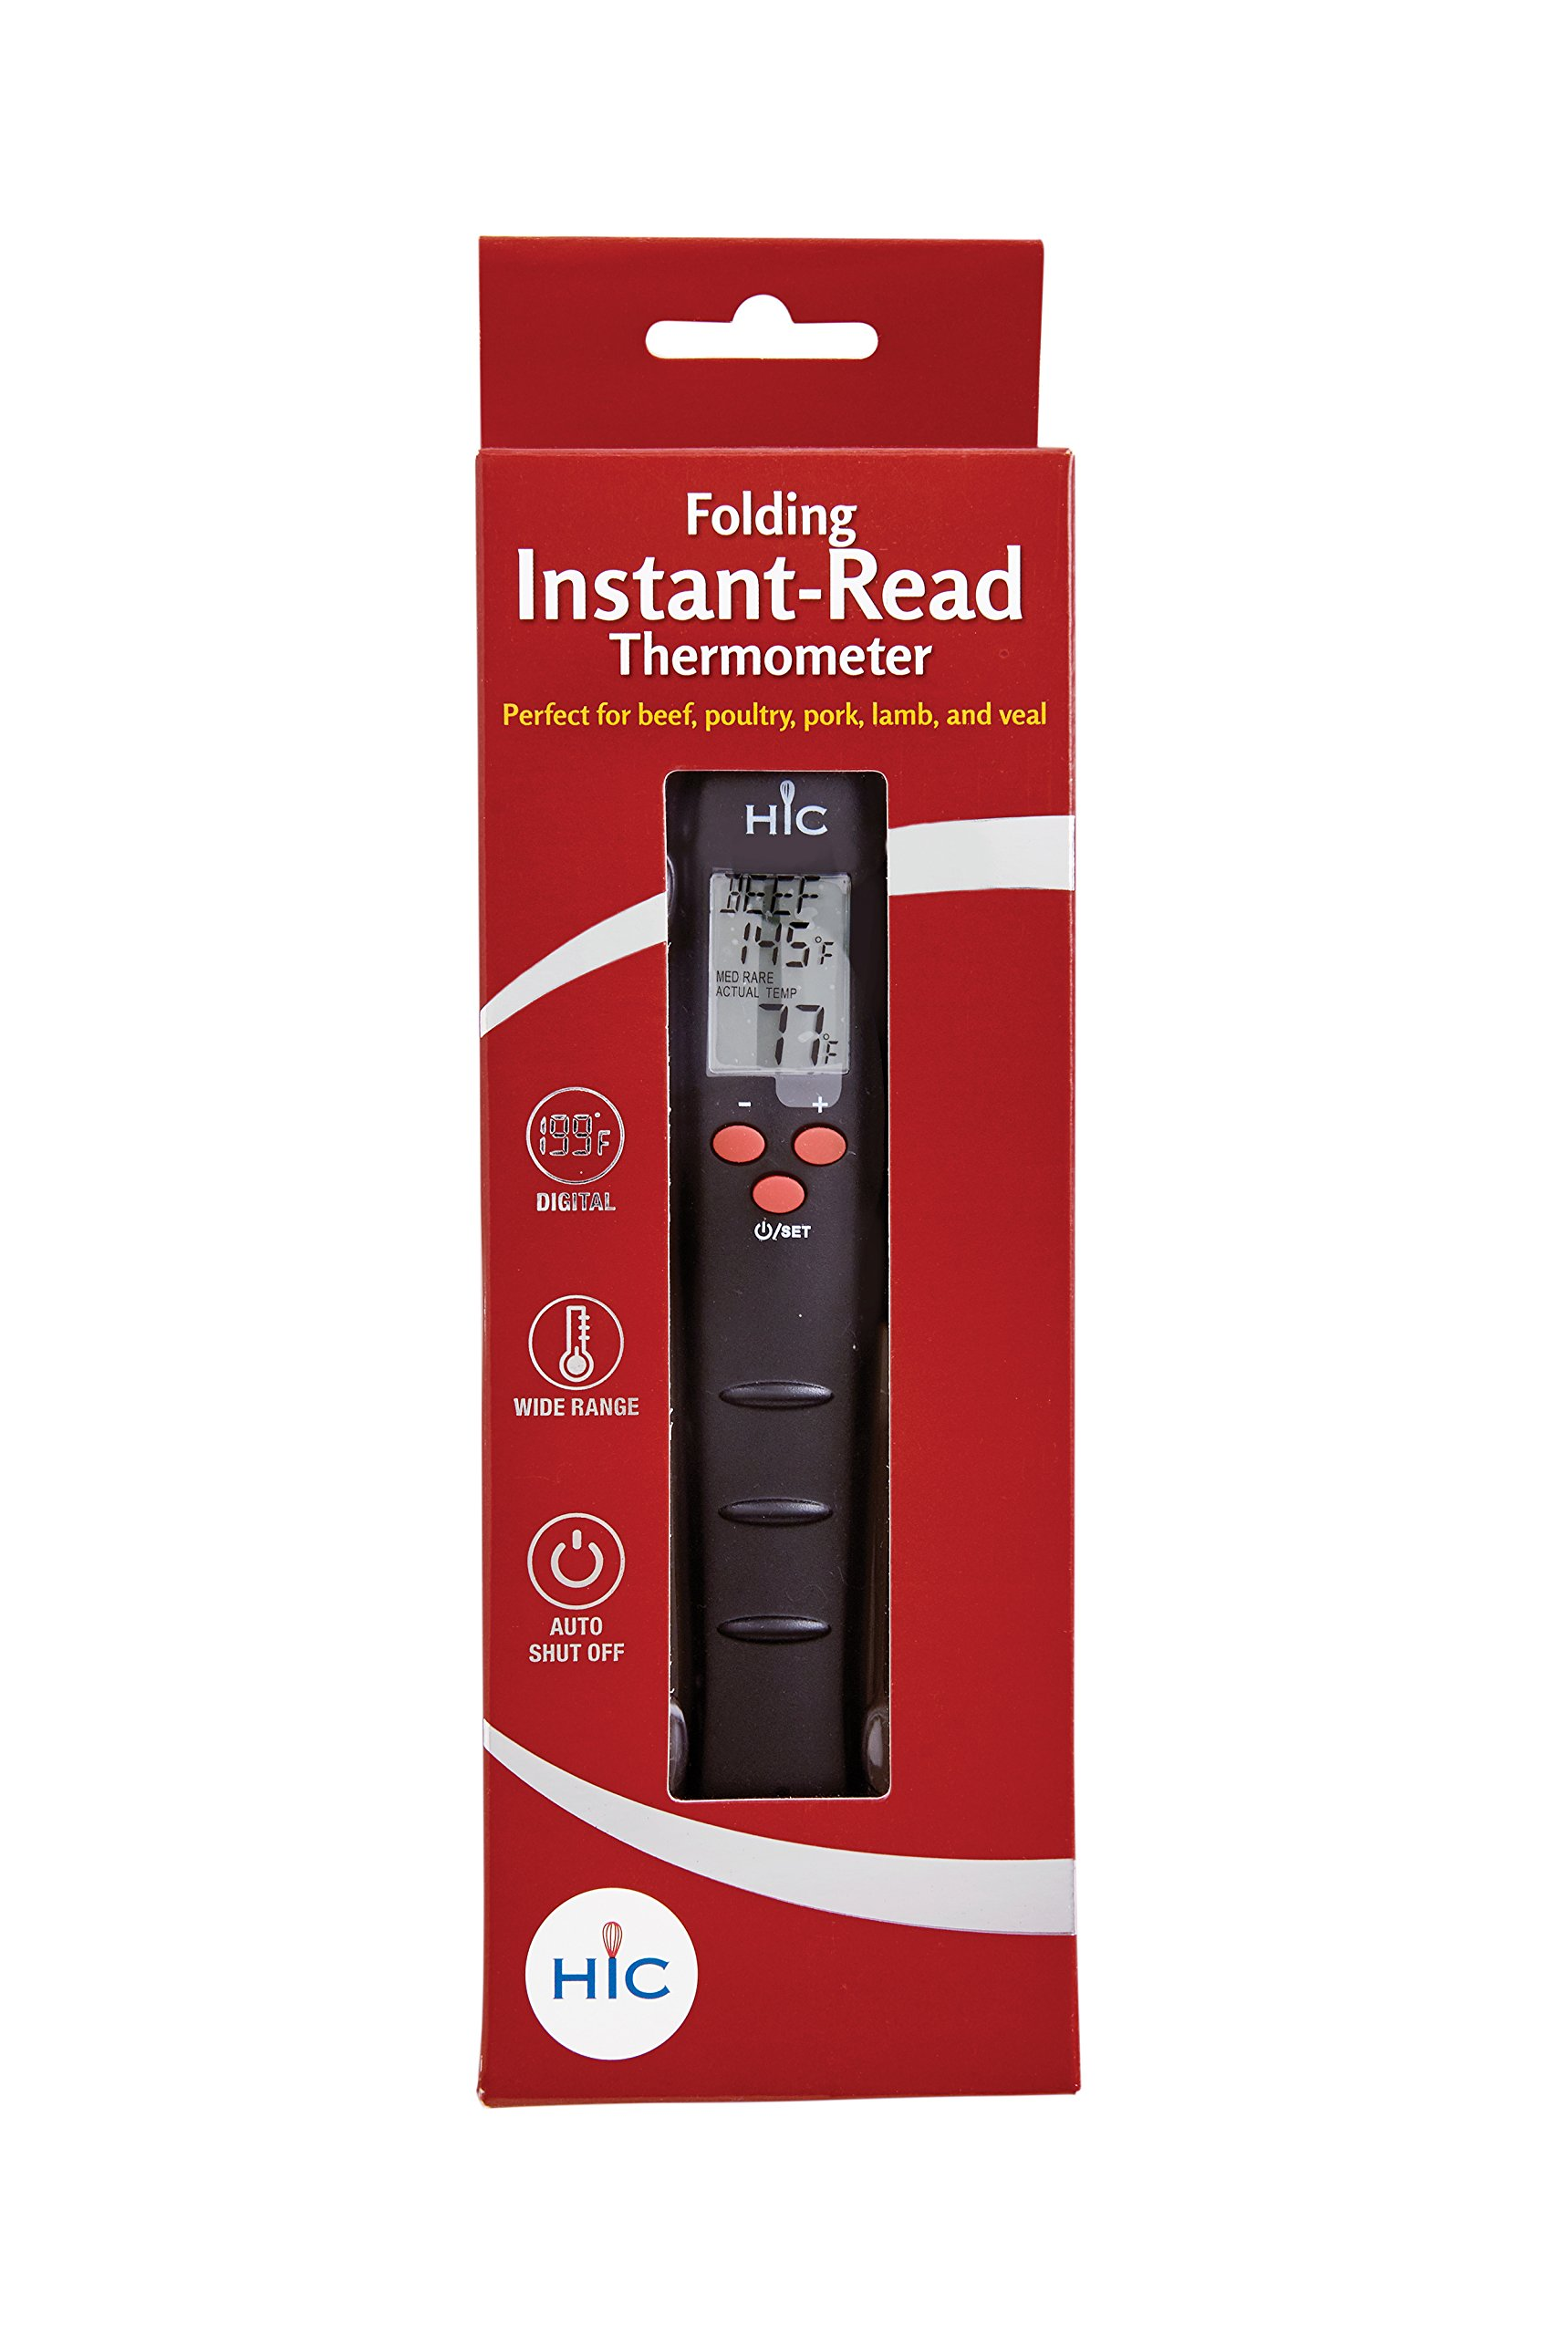 HIC Roasting Folding Instant-Read Digital Meat Thermometer 29010, LCD display with 5-Second Response Time and Stainless Steel Stem